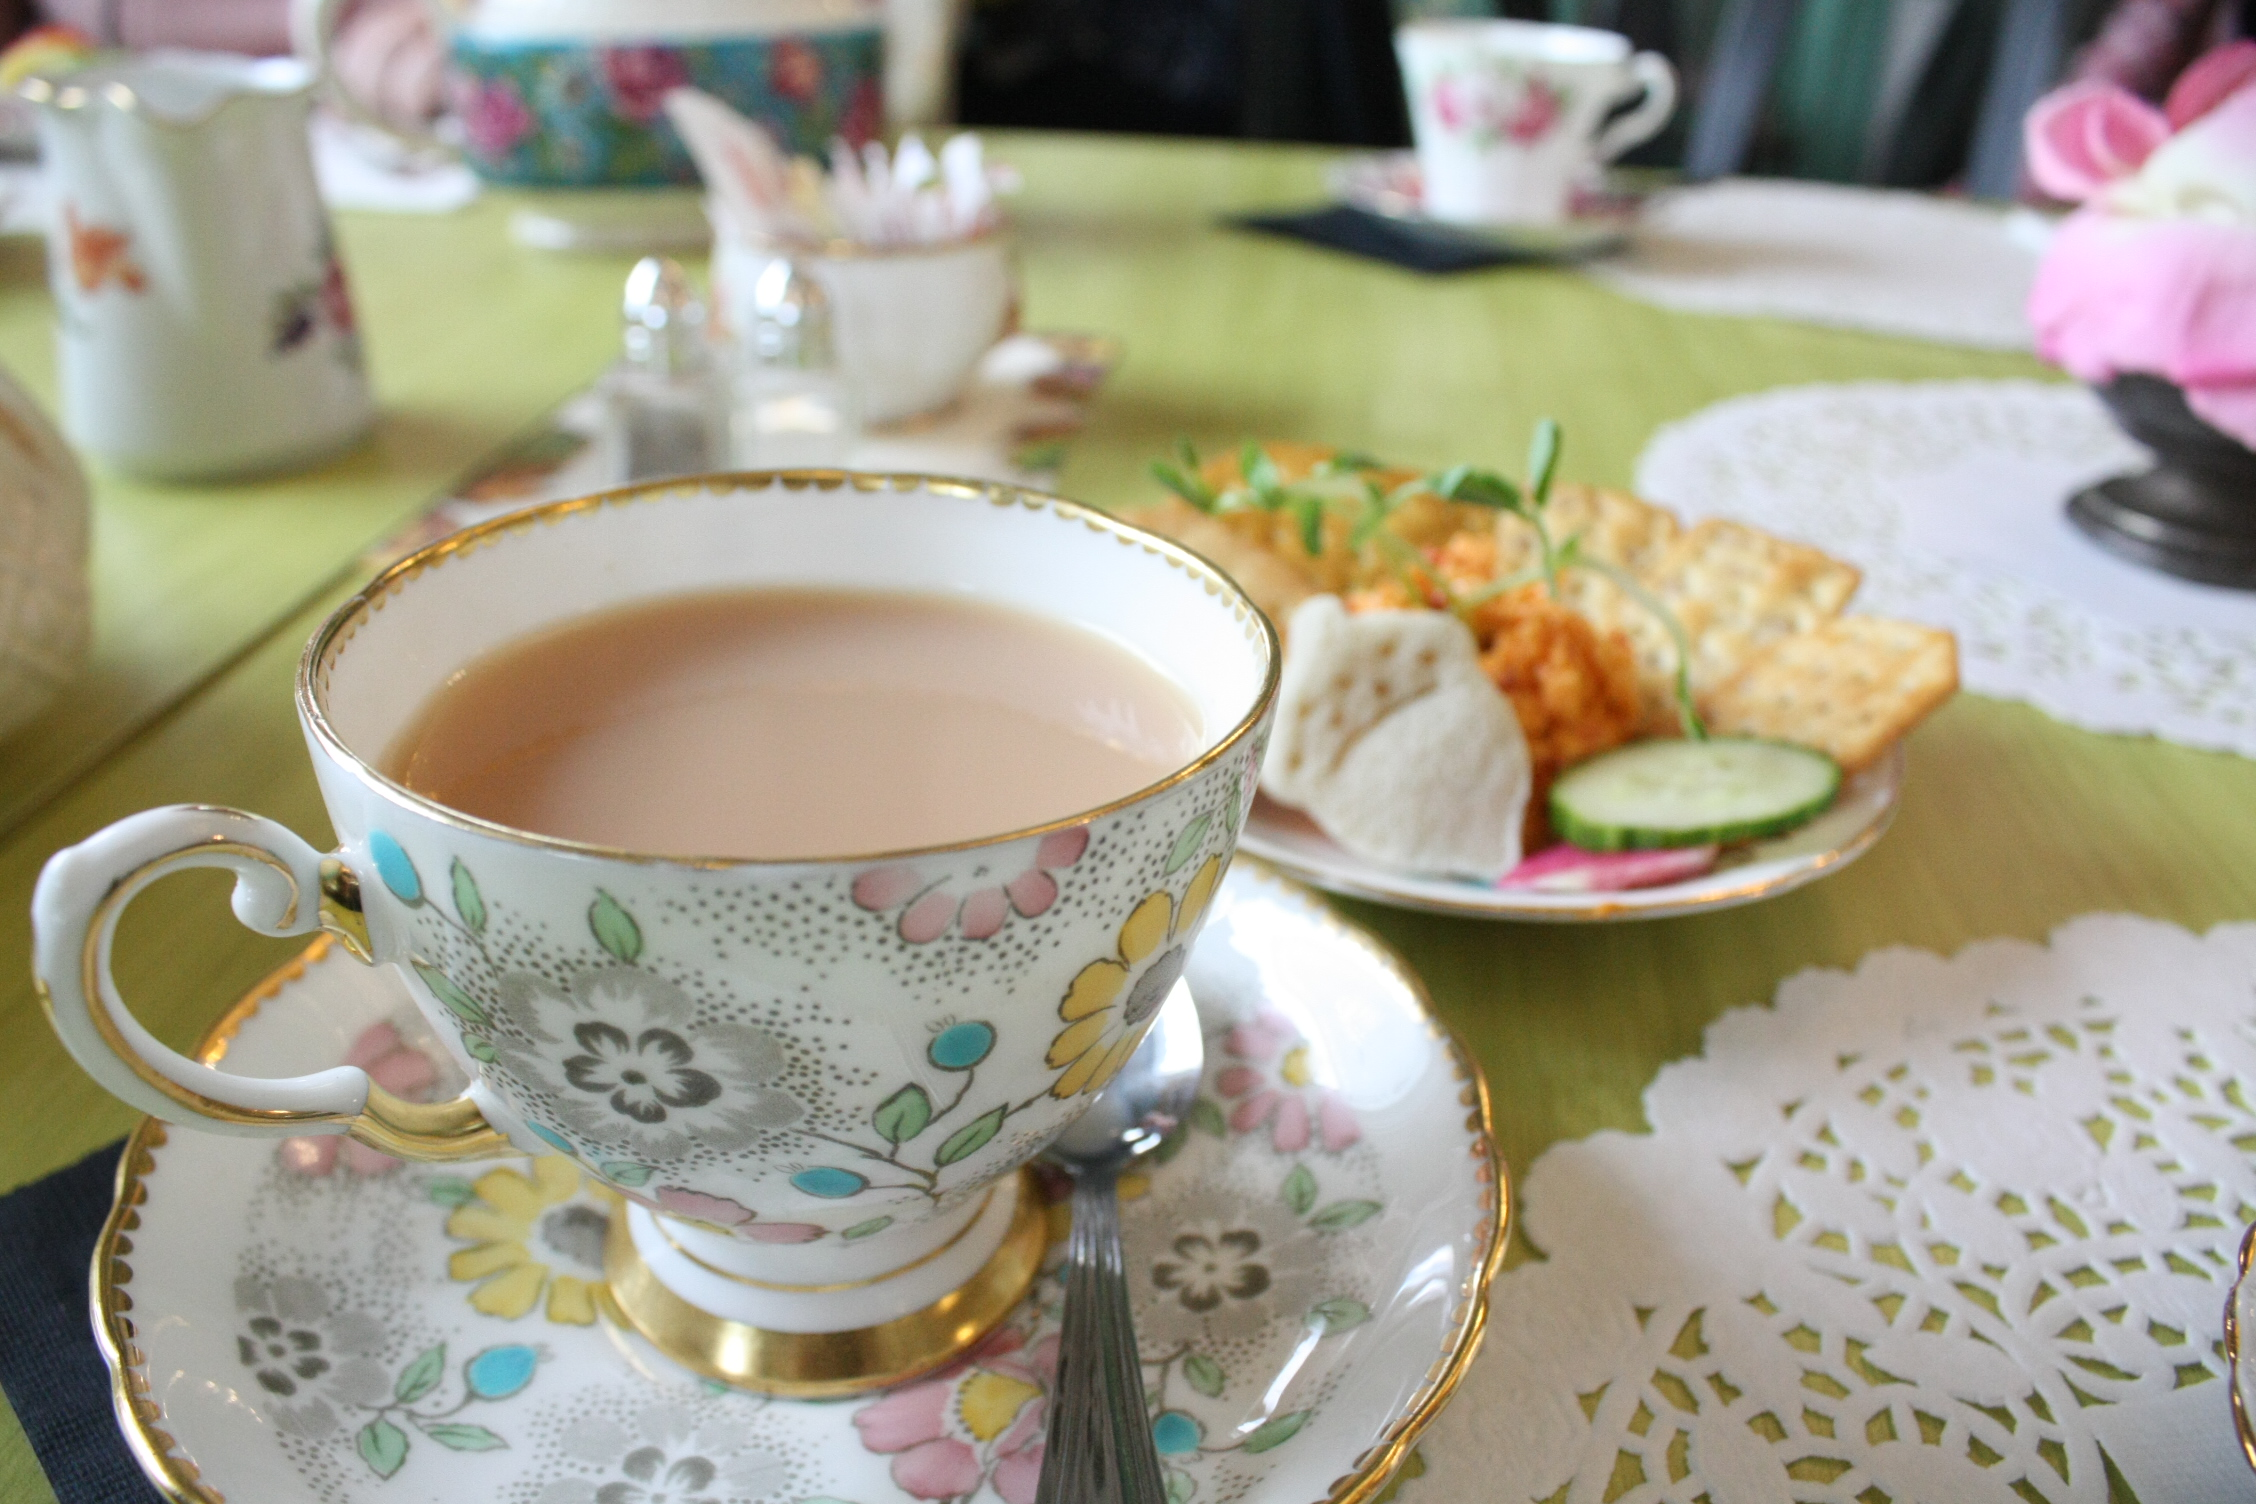 Abigail's Tea House St George Ontario | The Inlet News Blog Hamilton, Ontario Photo 3